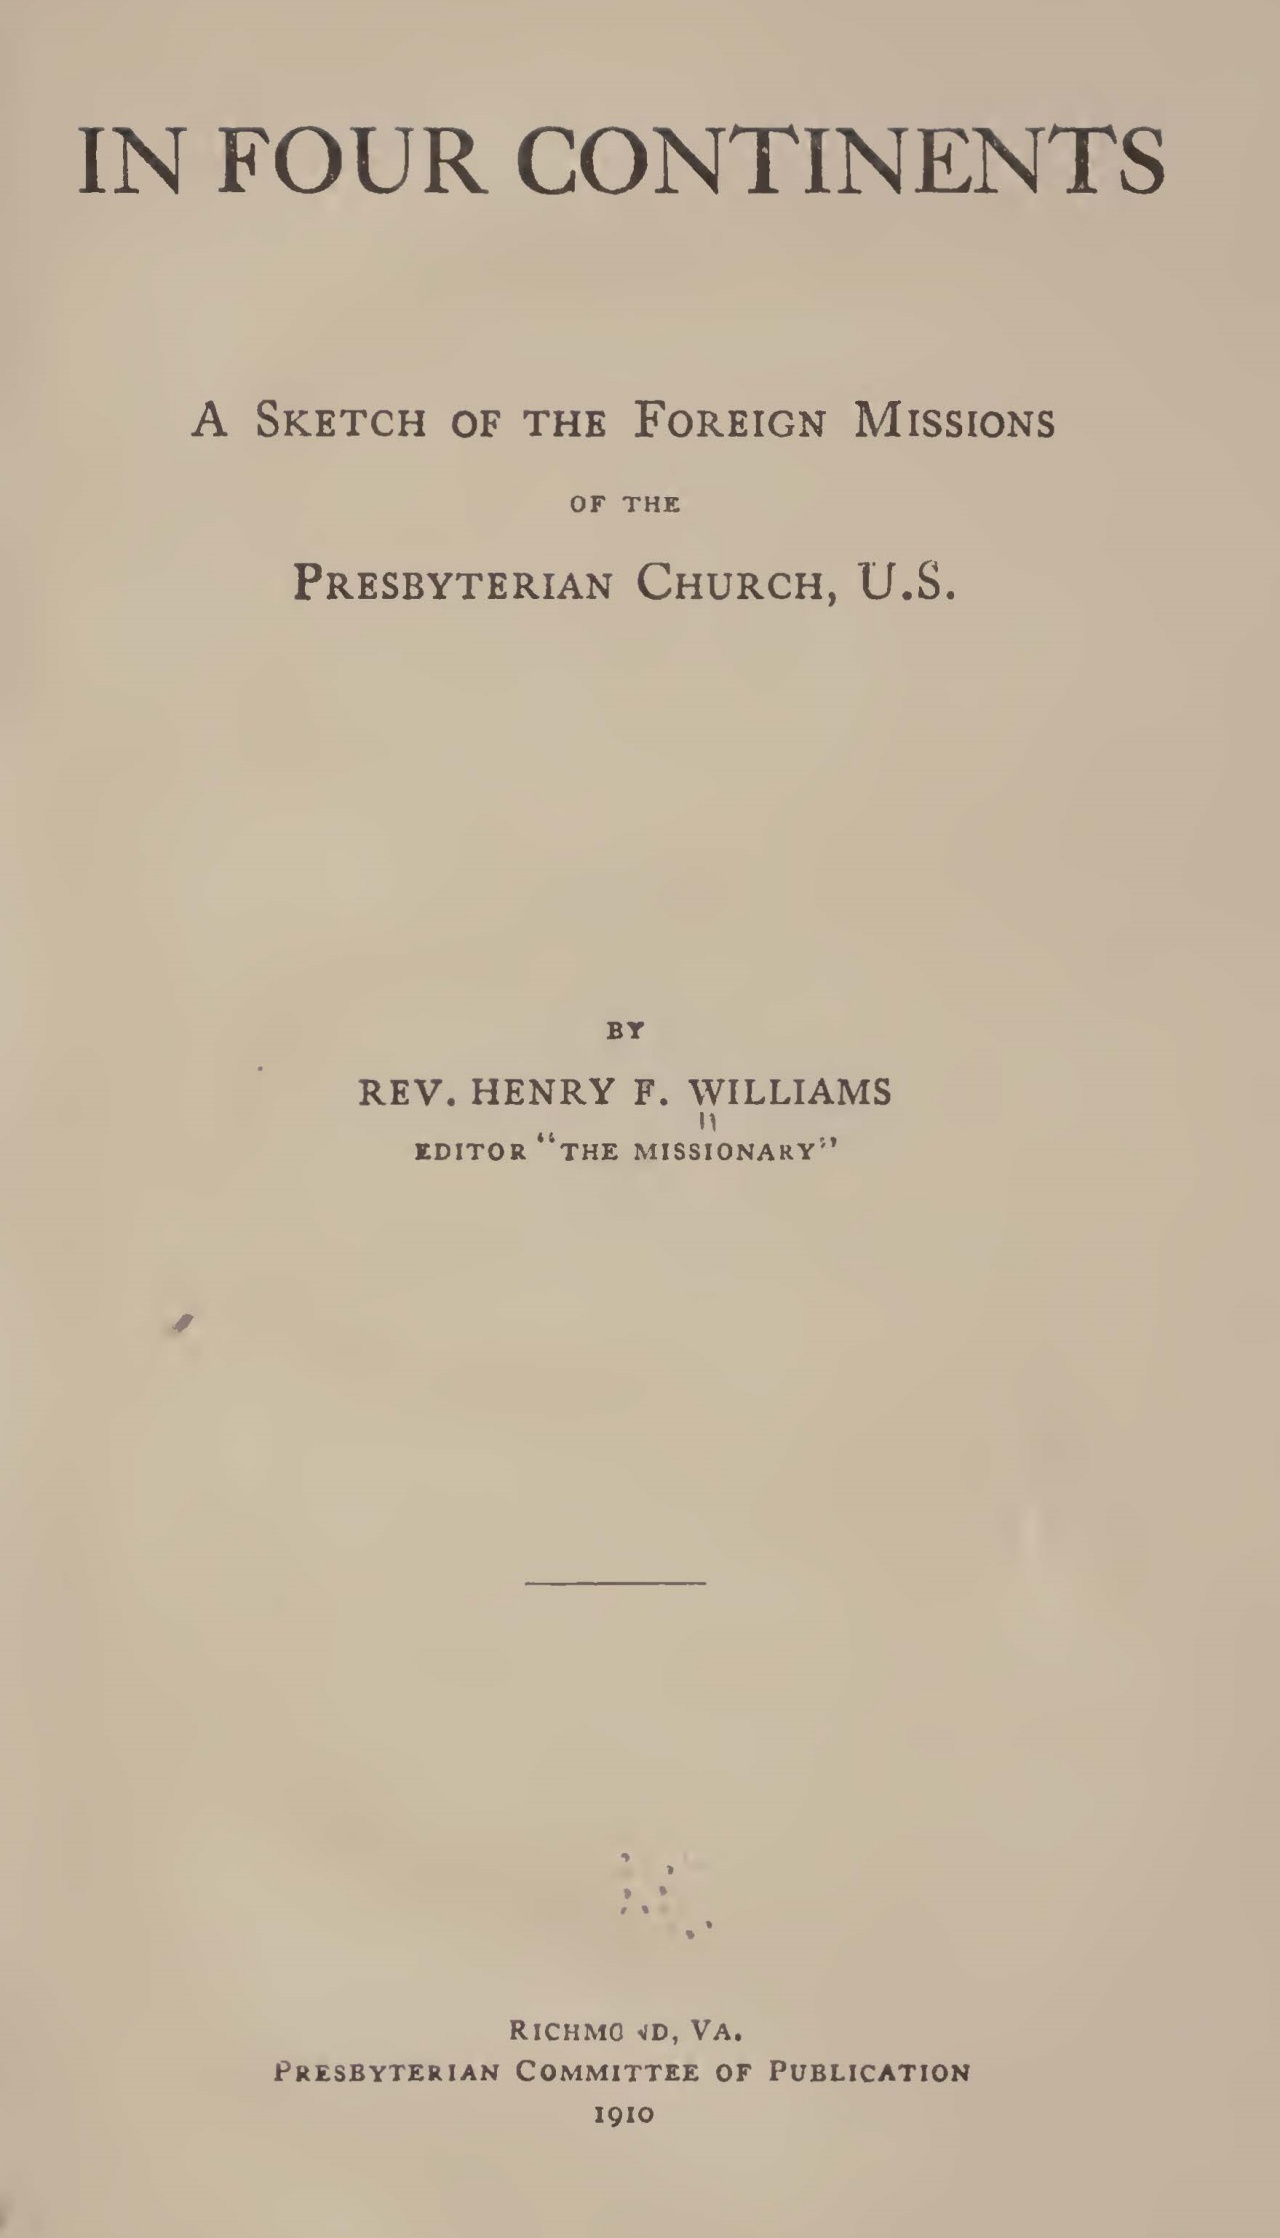 Williams, Henry Francis, In Four Continents Title Page.jpg